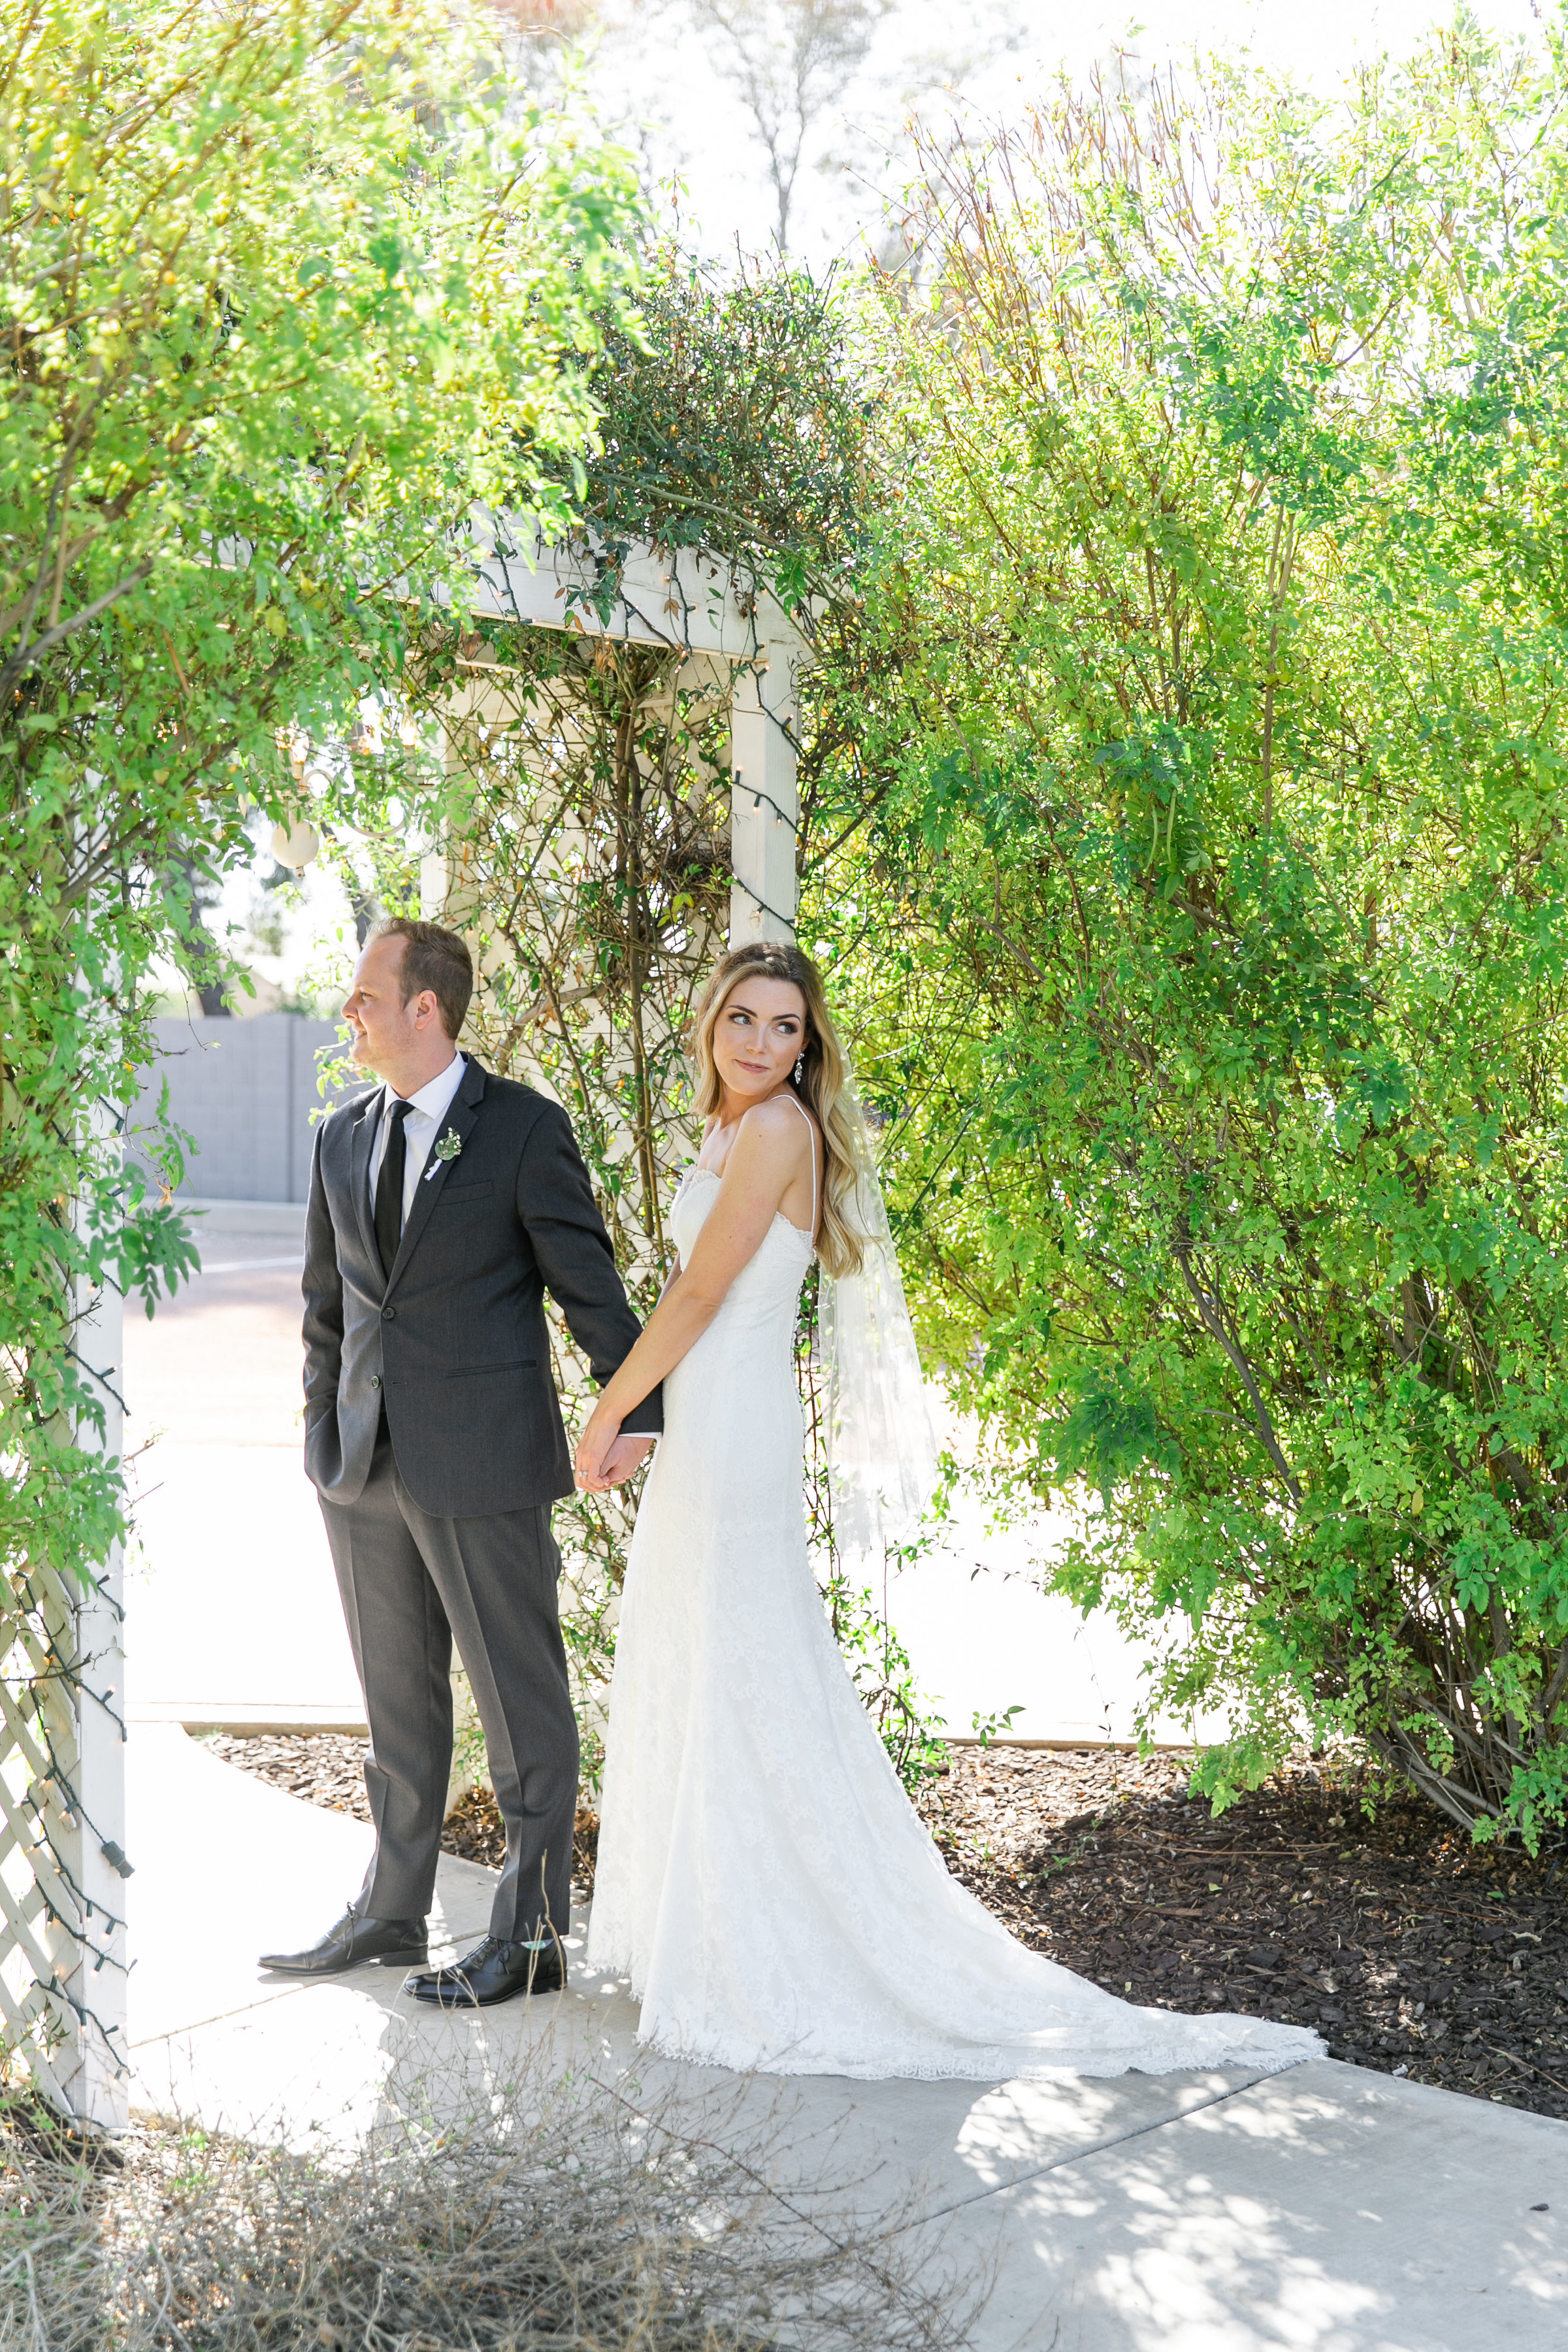 Karlie Colleen Photography - Gather Estates Venue Arizona - Sarah & Brad-290